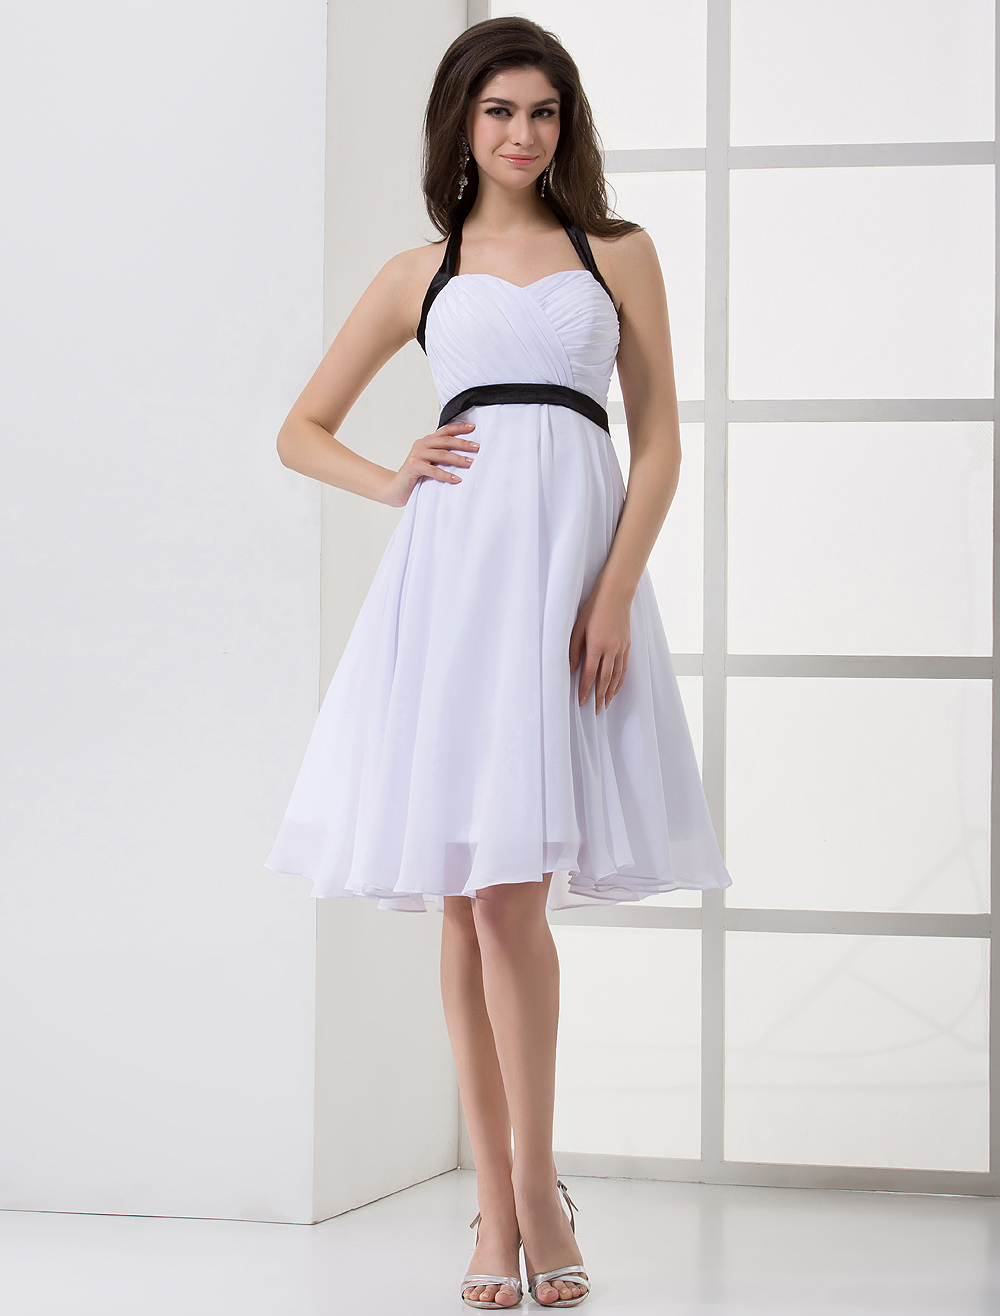 White Empire Waist Halter Sash Satin Chiffon Bridesmaid Dress